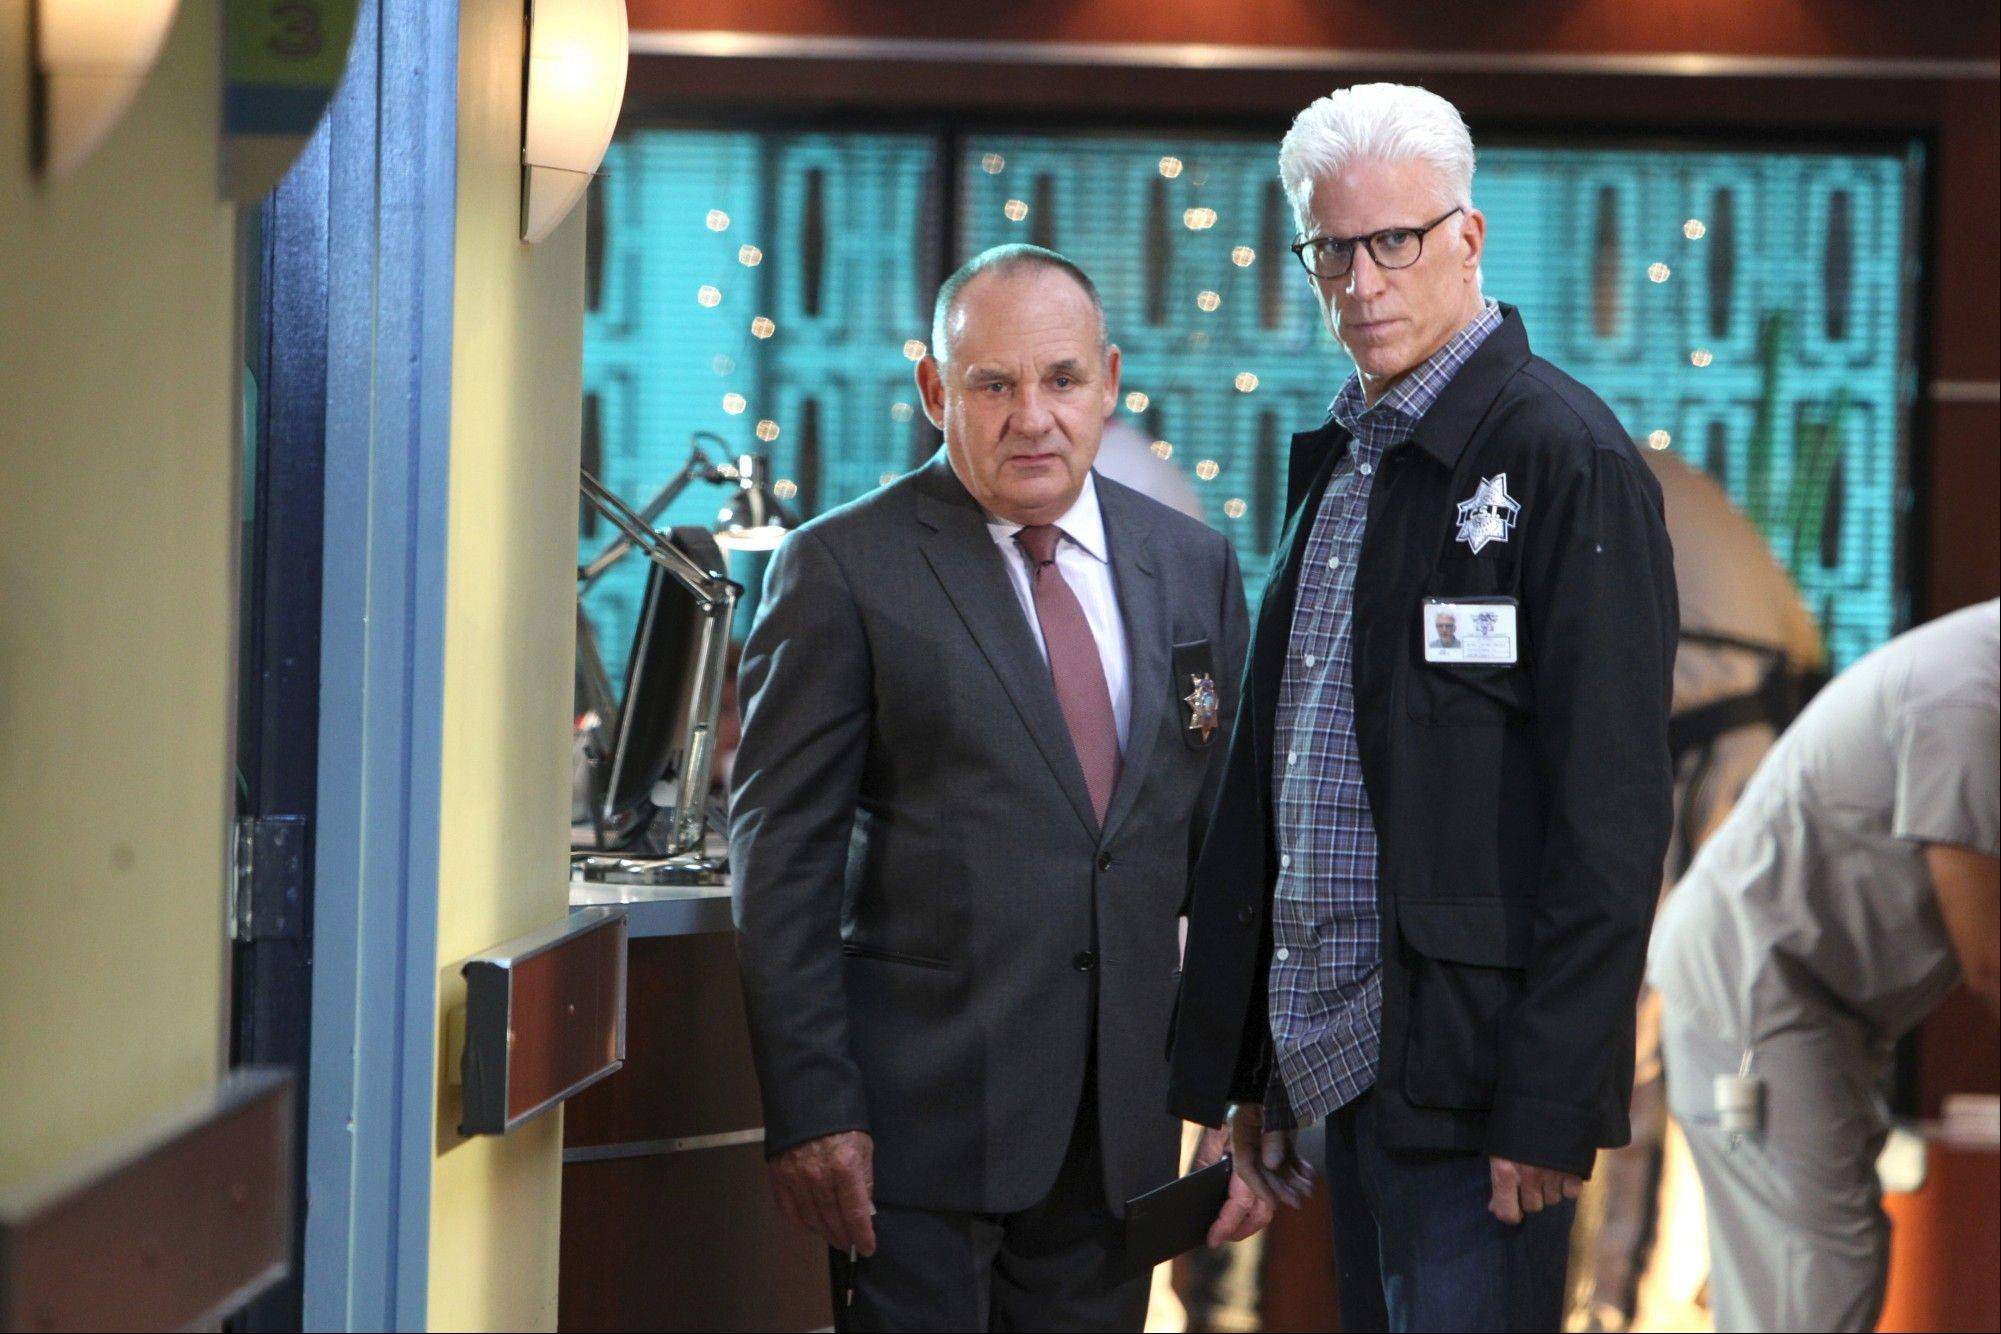 Paul Guilfoyle, left, has been with �CSI: Crime Scene Investigation� from day one, while Ted Danson is in his third season. Both will help mark the CBS show�s 300th episode on Oct. 23.